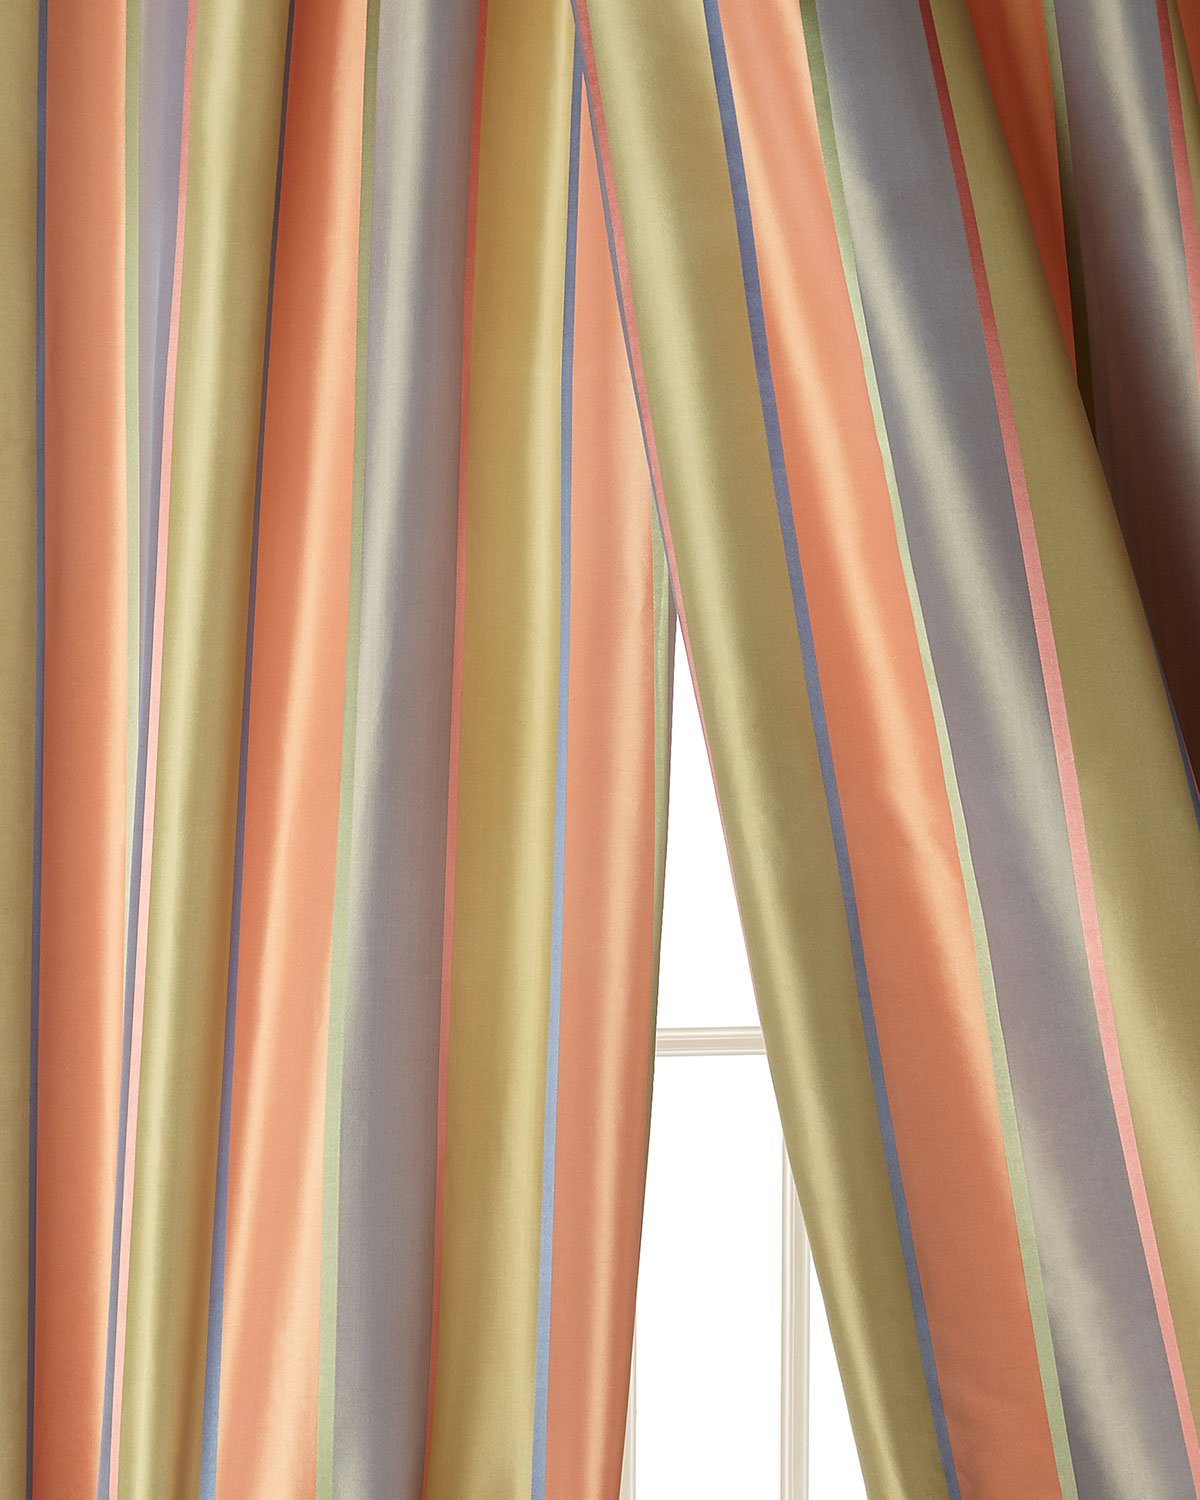 Image result for PEACH SATIN STRIPE CURTAIN